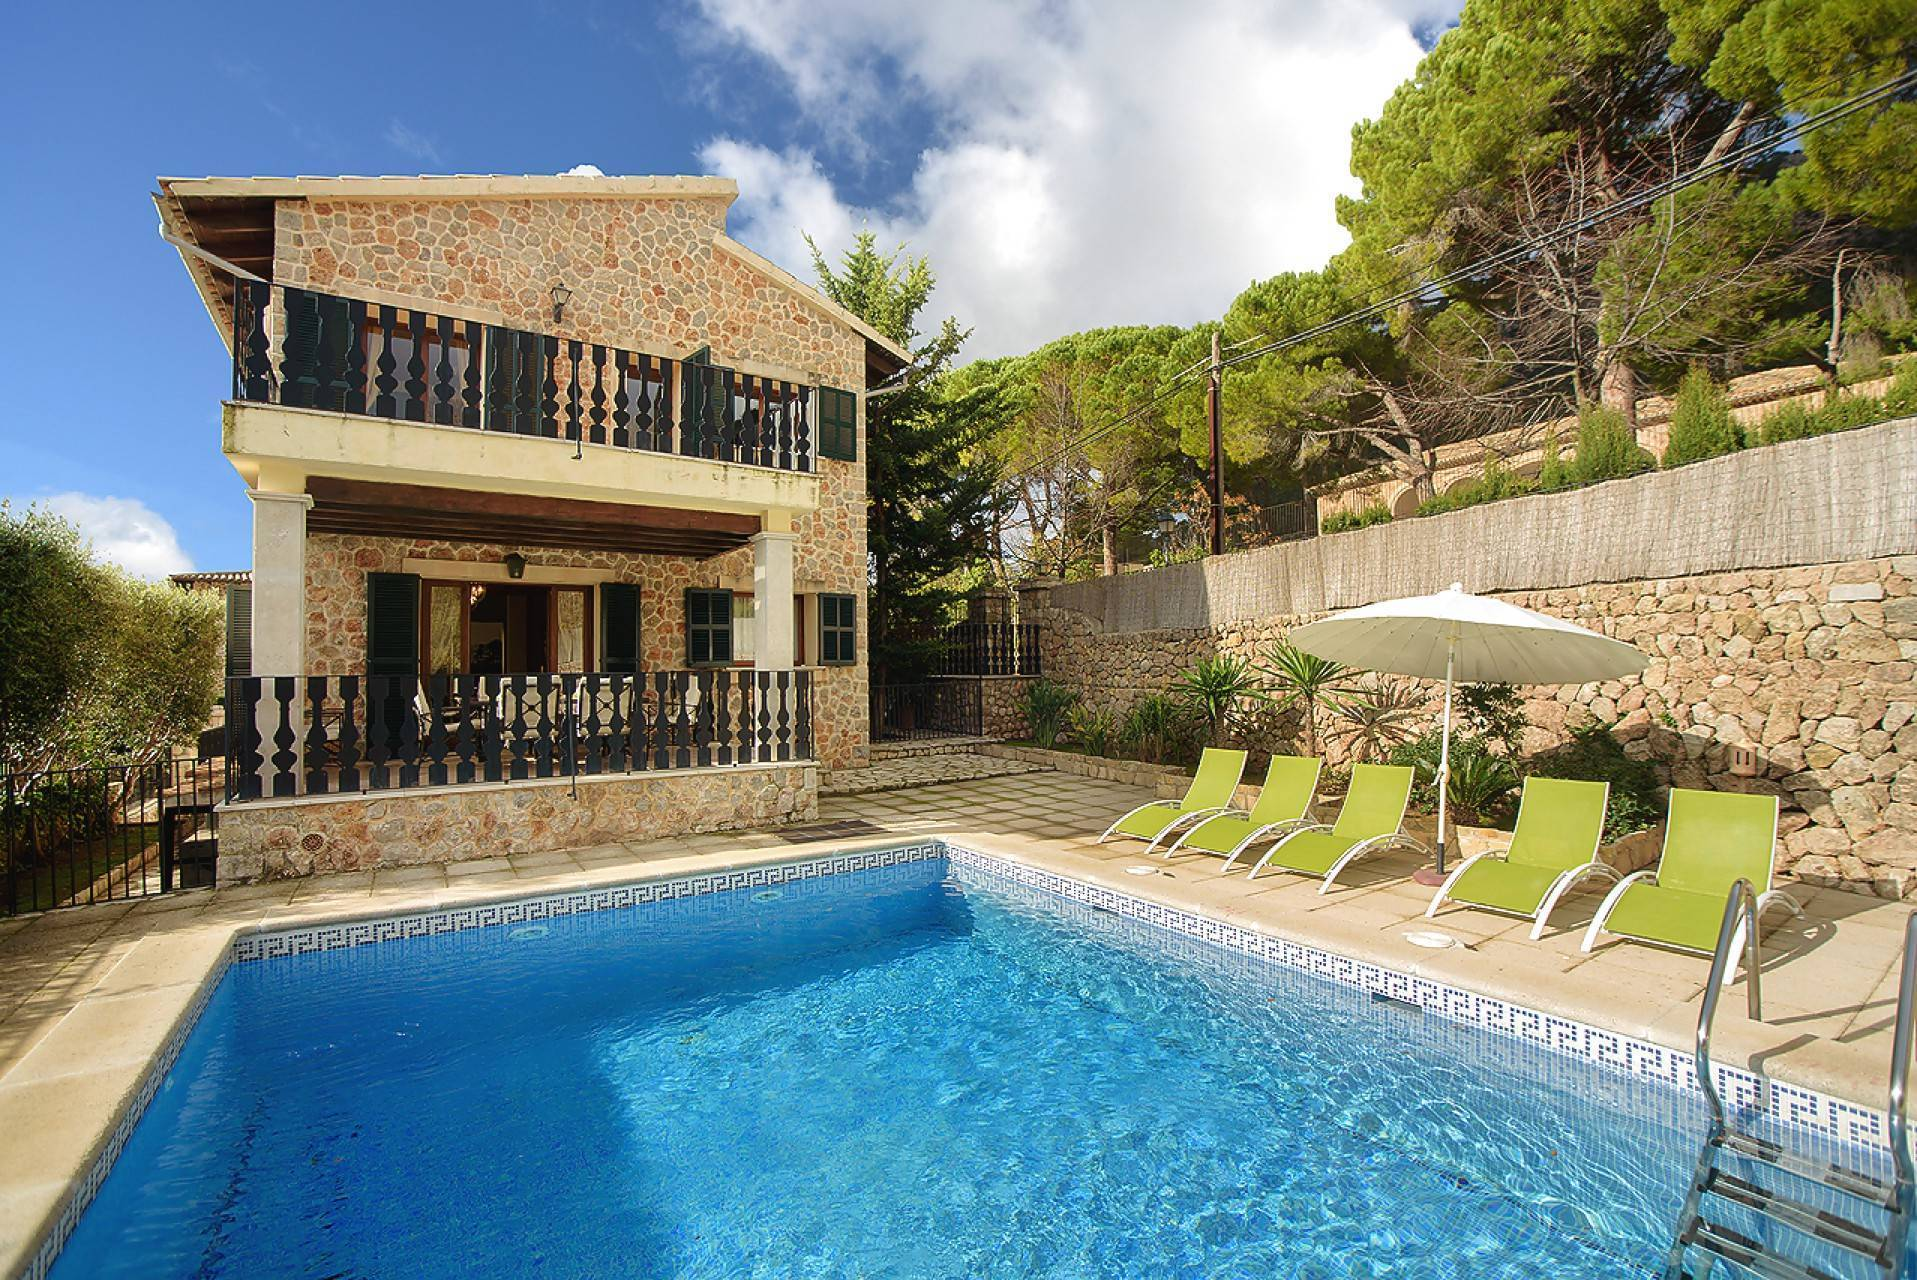 01-134 Cozy holiday home Mallorca west Bild 3